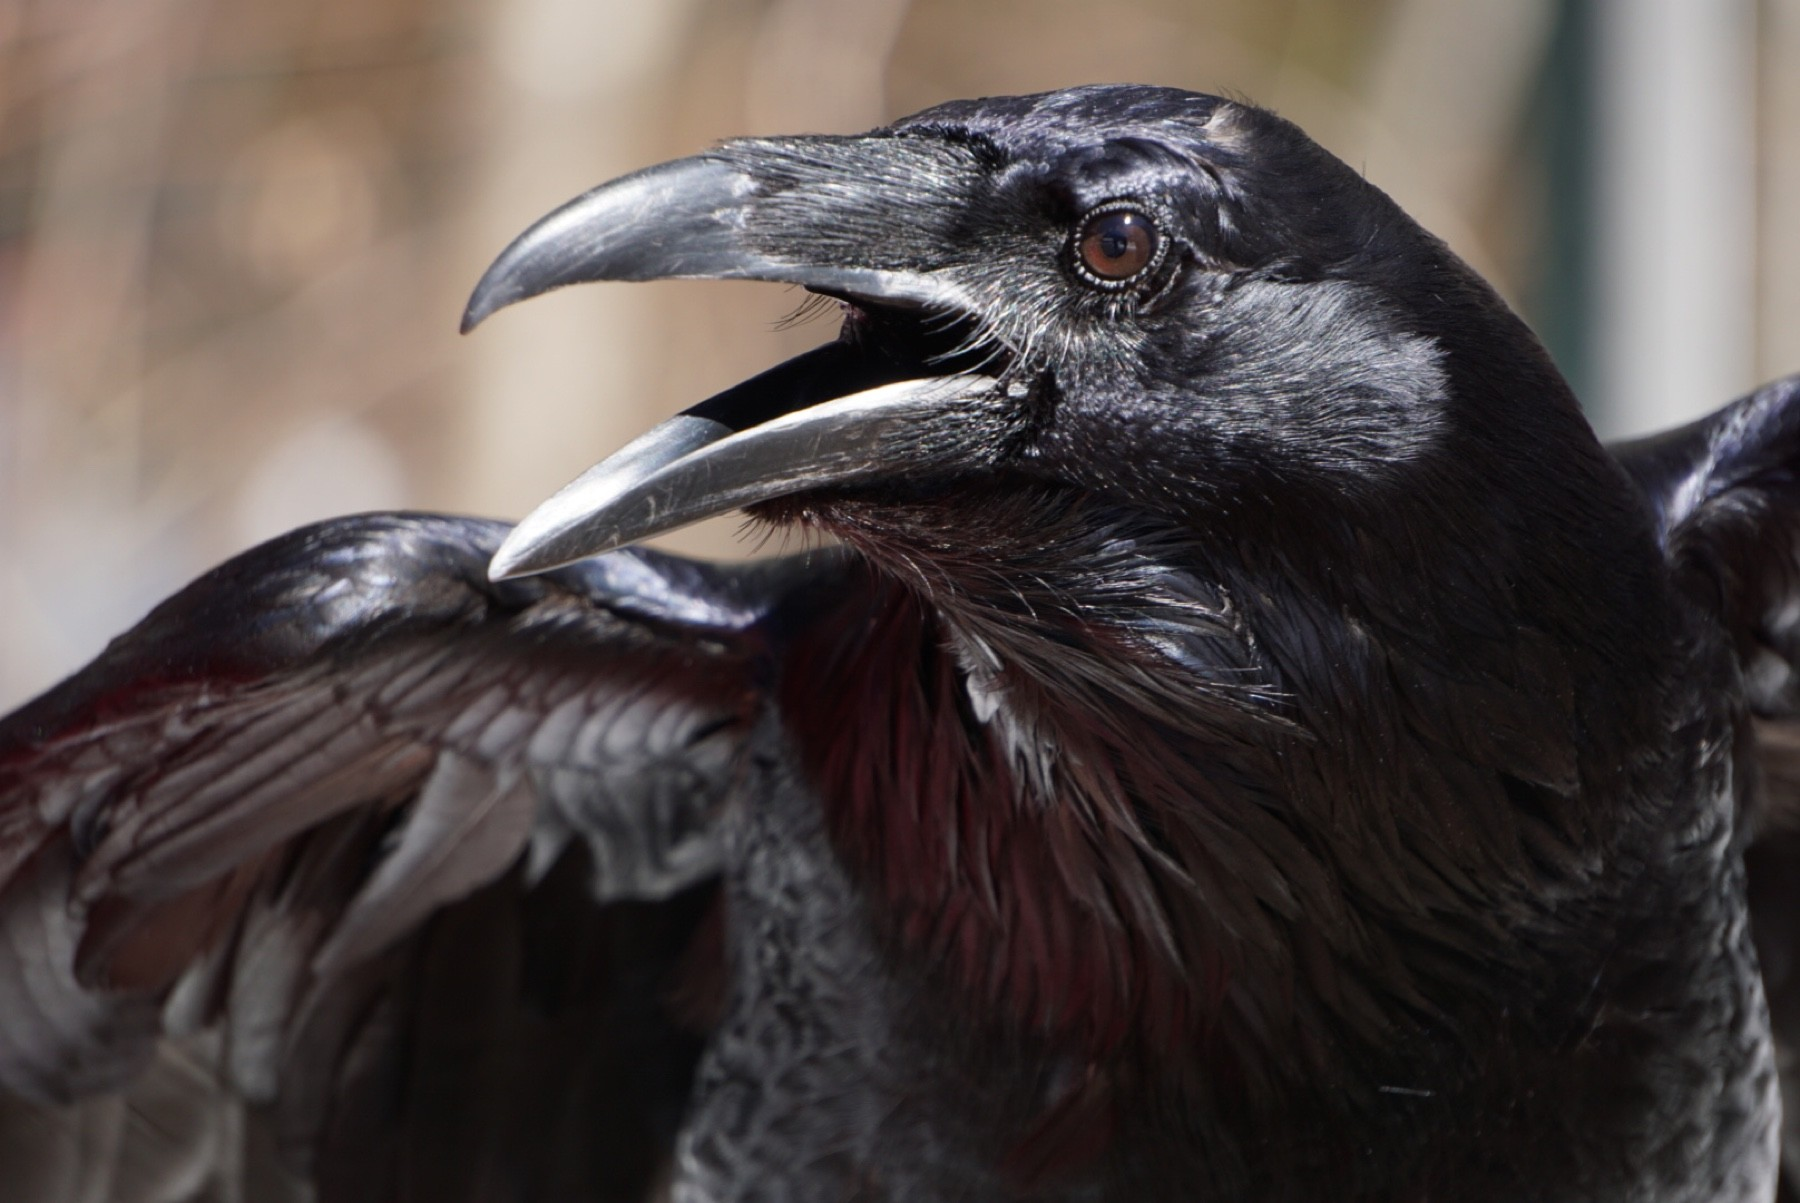 Zachariah the Raven